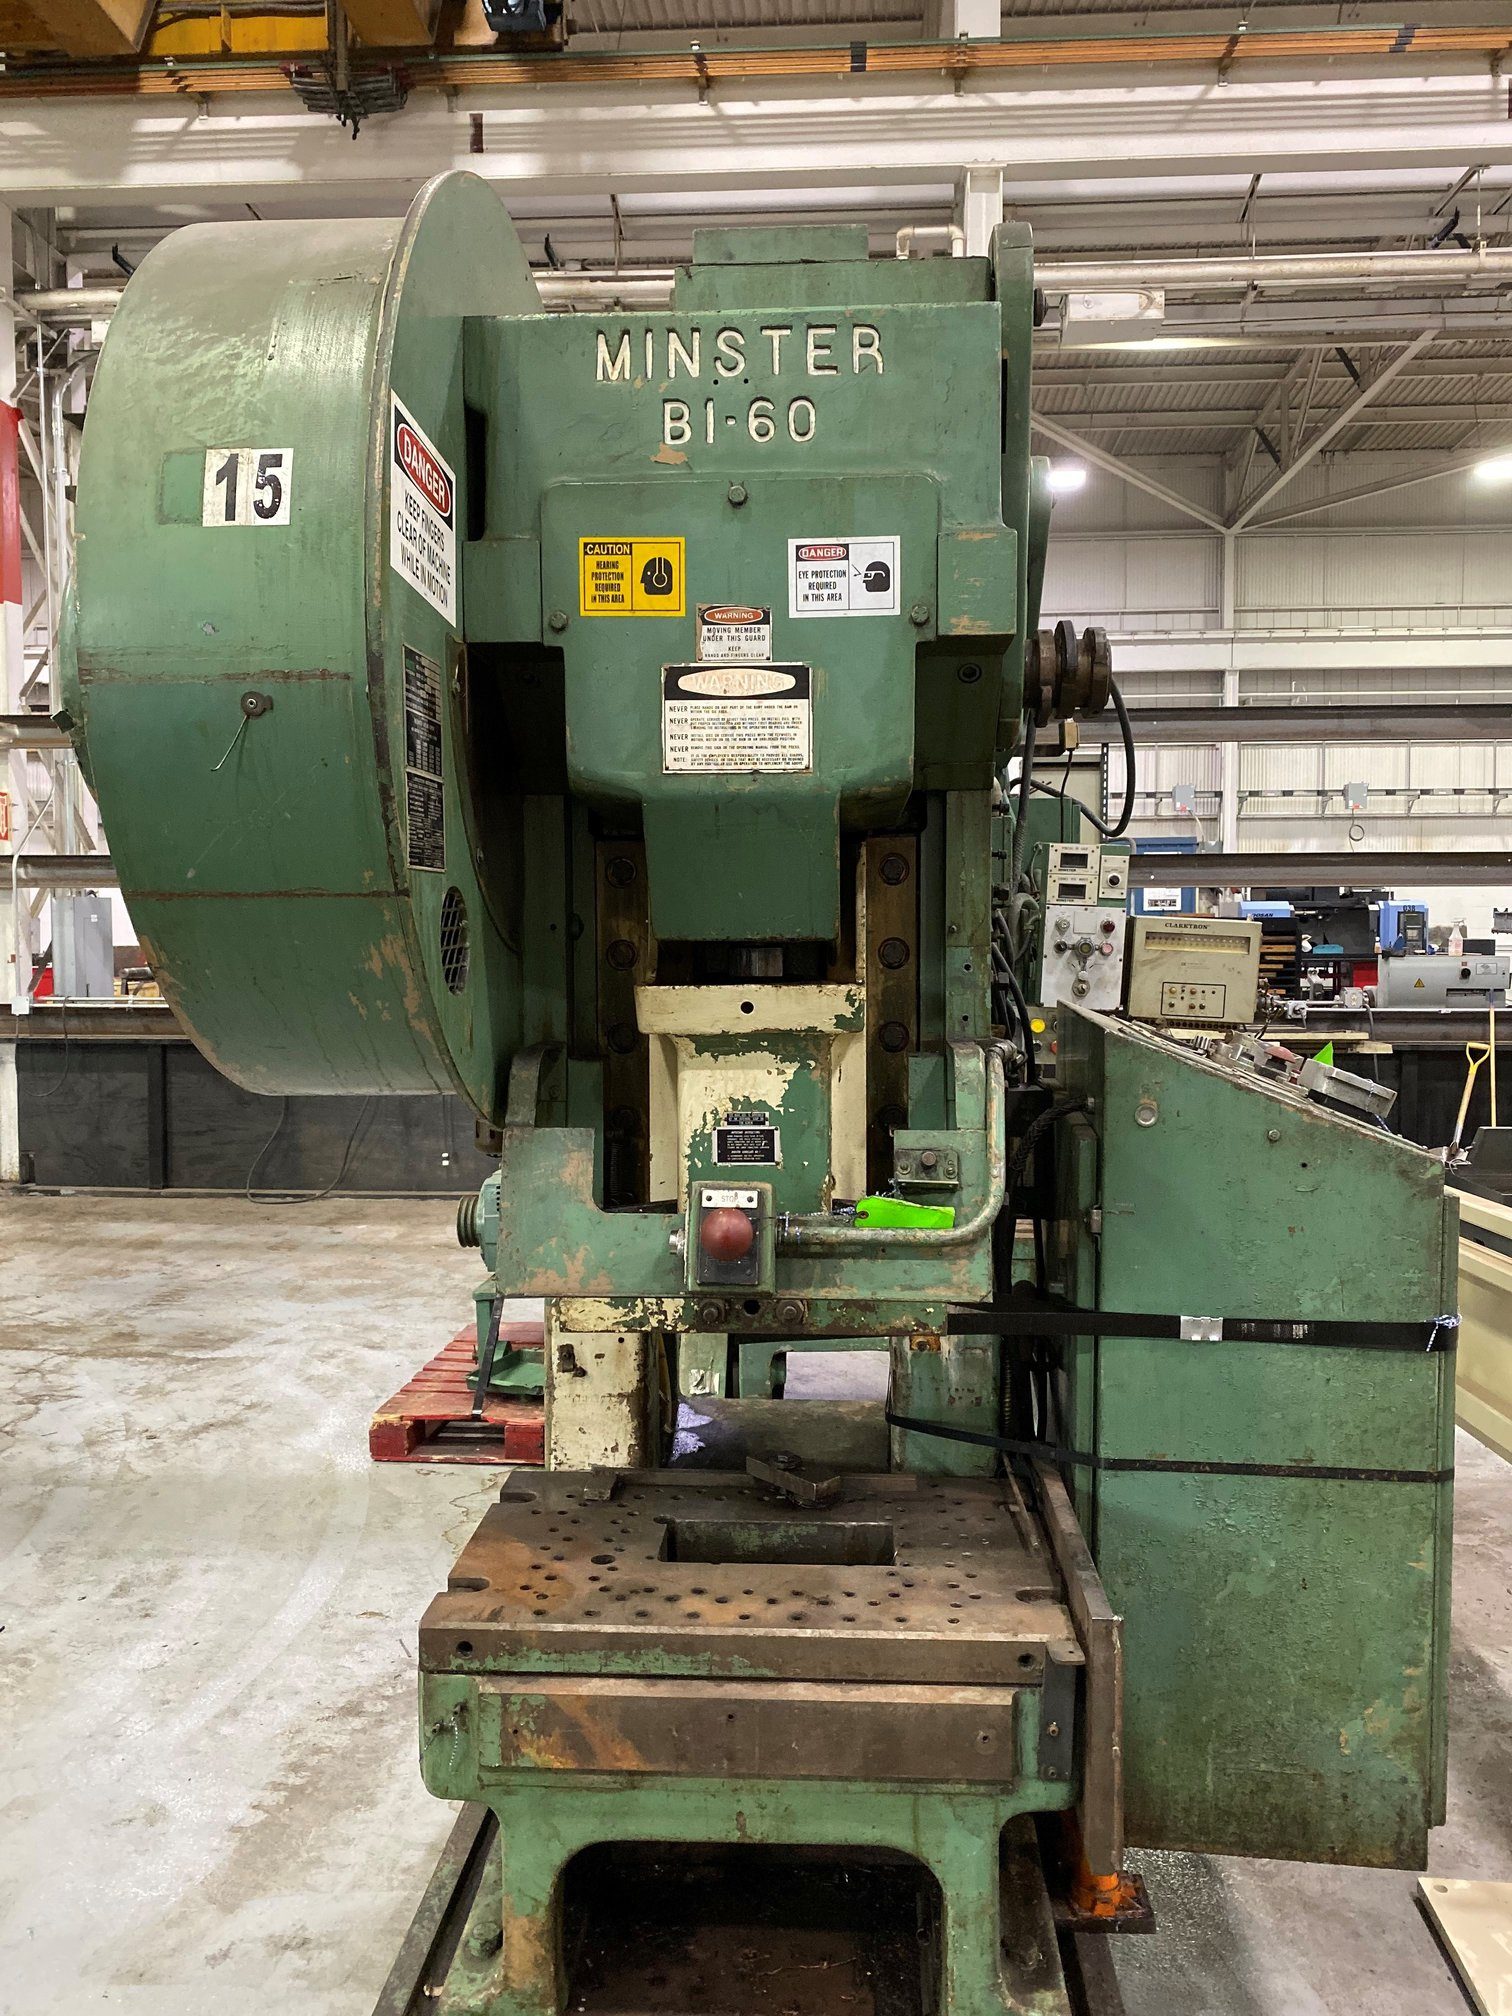 60 TON MINSTER B1-60 FIXED BASE GAP FRAME PRESS